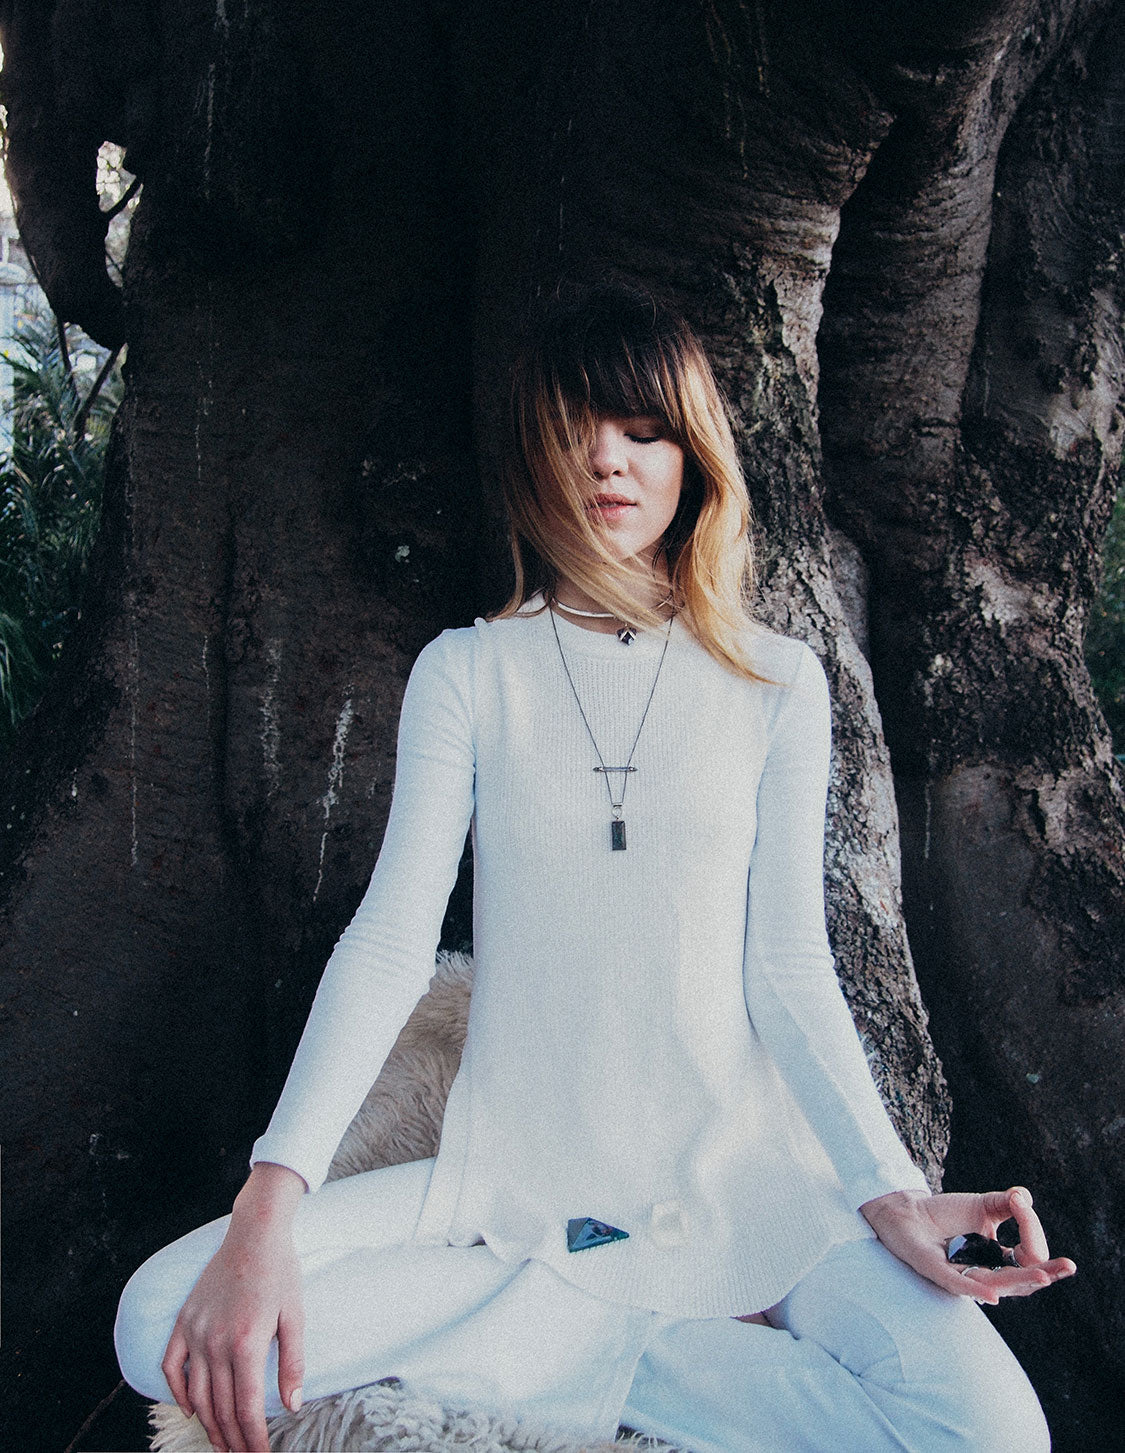 Ondine-maniamania-how-to-meditate-with-crystals-commune-modern-mystic-4